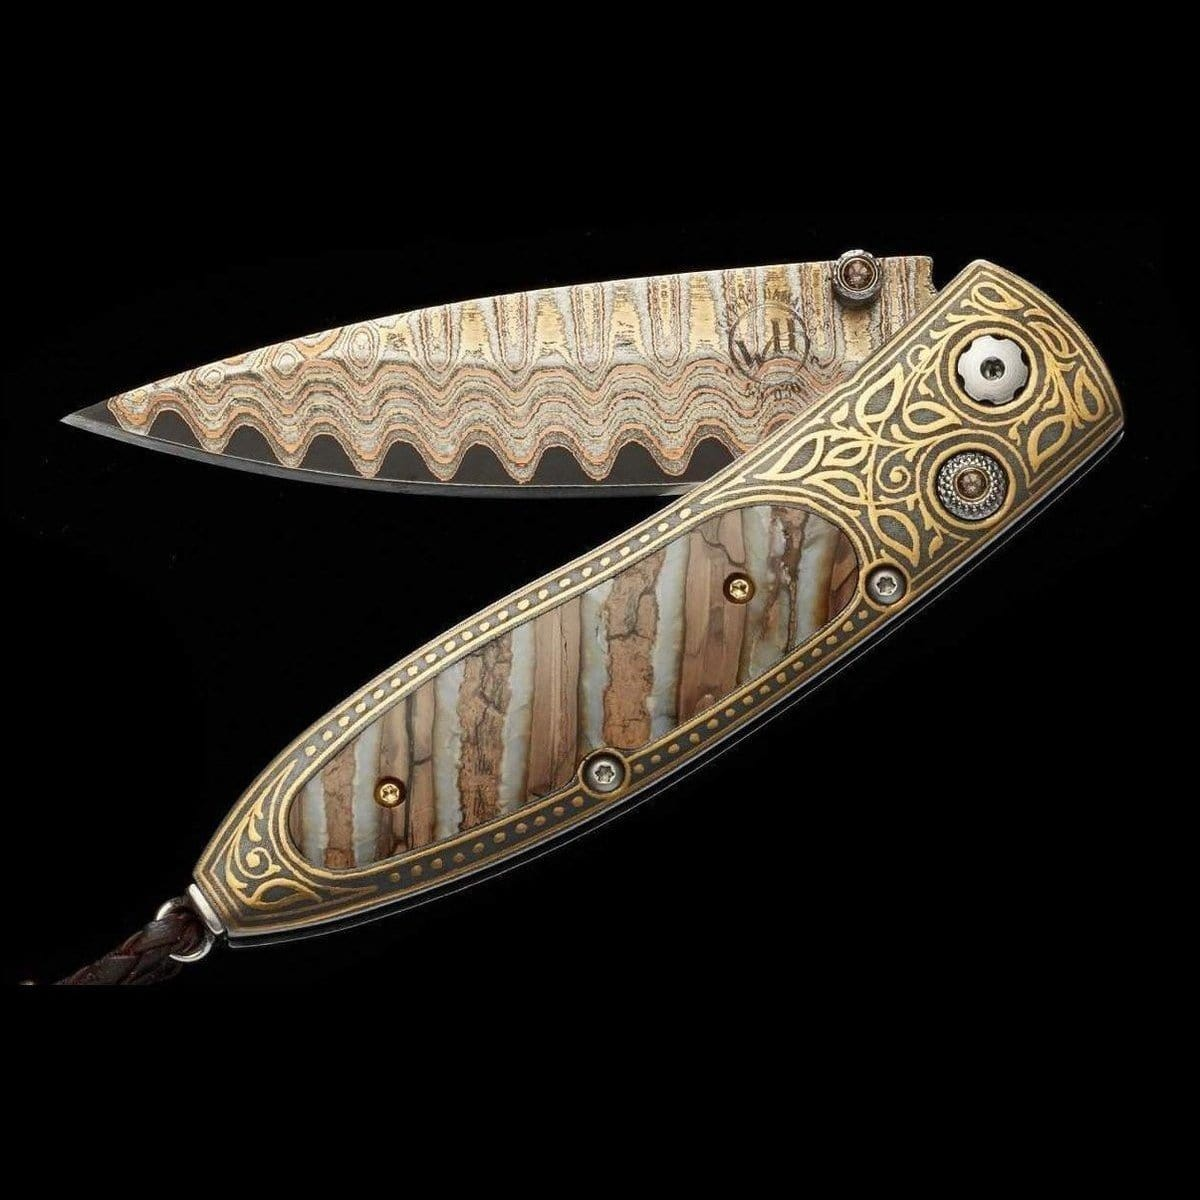 Monarch Providence Limited Edition Knife - B05 PROVIDENCE-William Henry-Renee Taylor Gallery